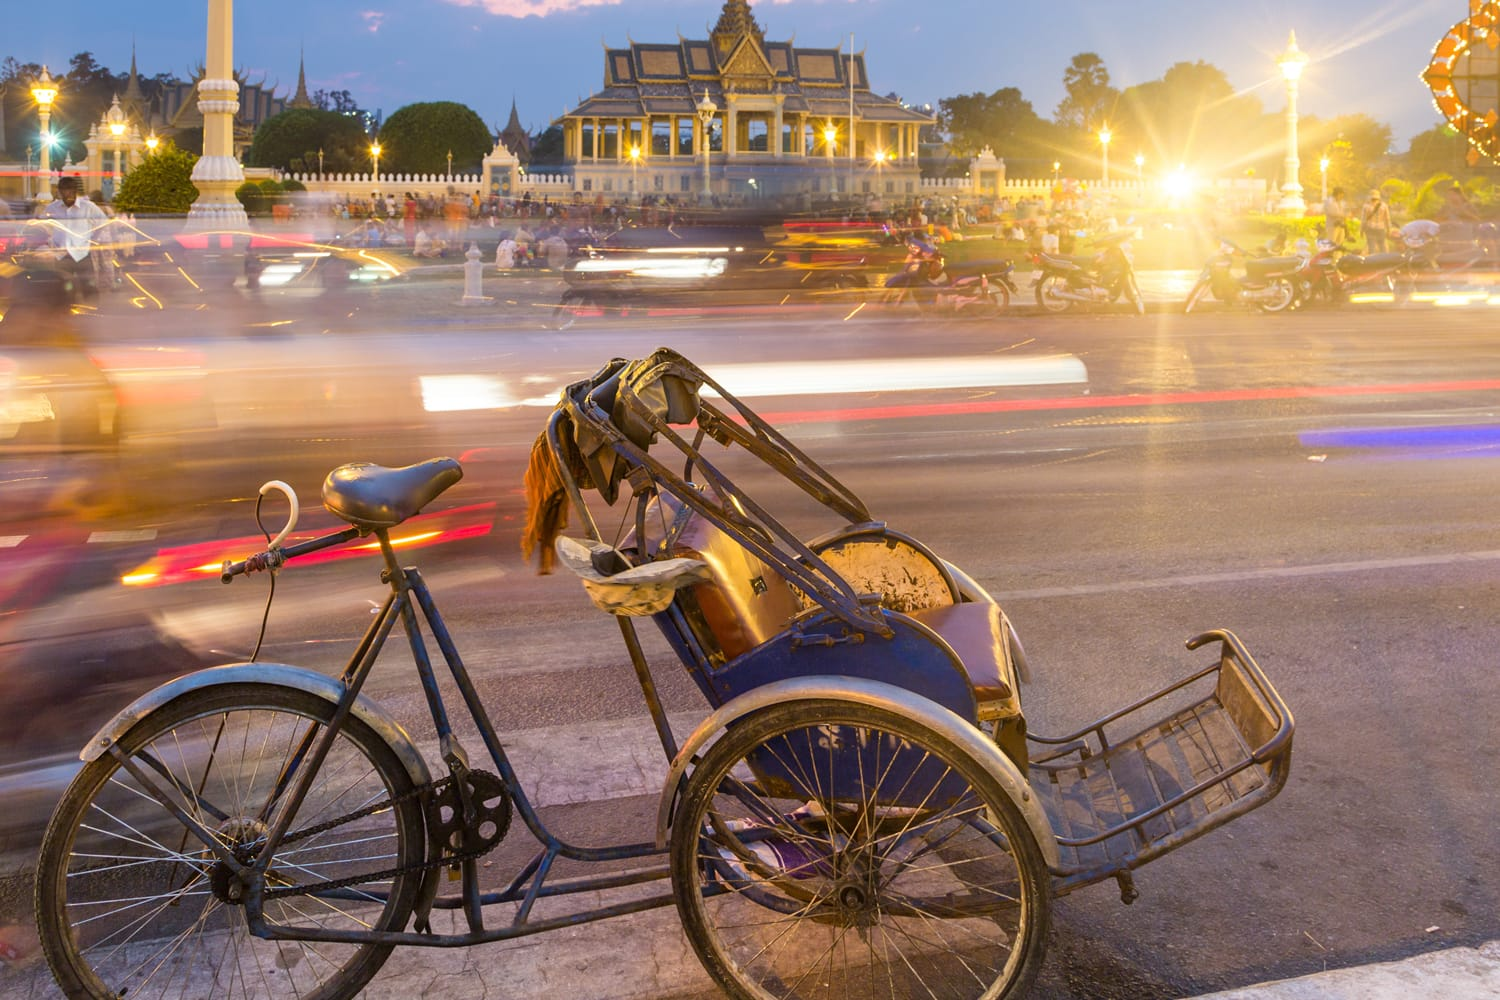 A bicycle rickshaw is parked in front of Phnom Penh Royal Palace in Cambodia capital city.